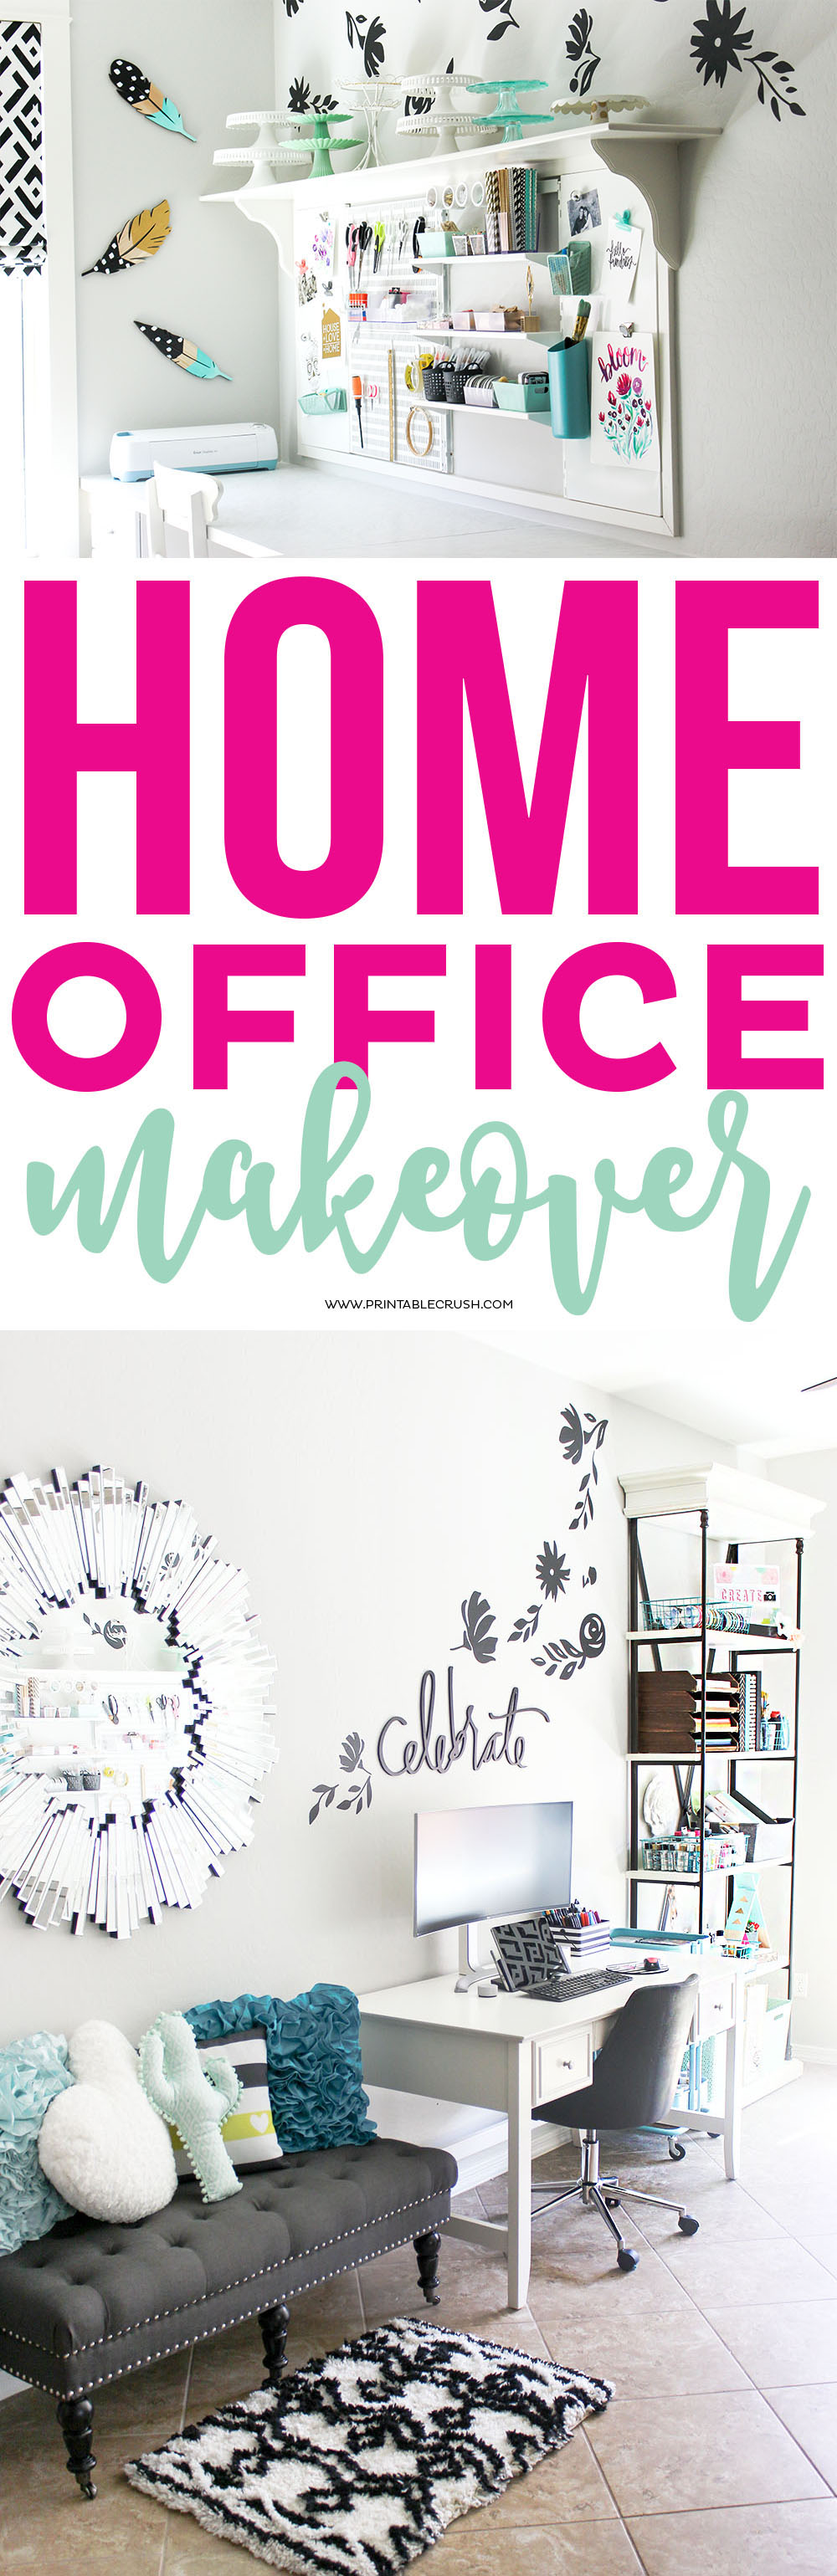 http://printablecrush.com/wp-content/uploads/2017/03/Artistic-Craft-Room-and-Home-Office-Makeover-2-1.jpg